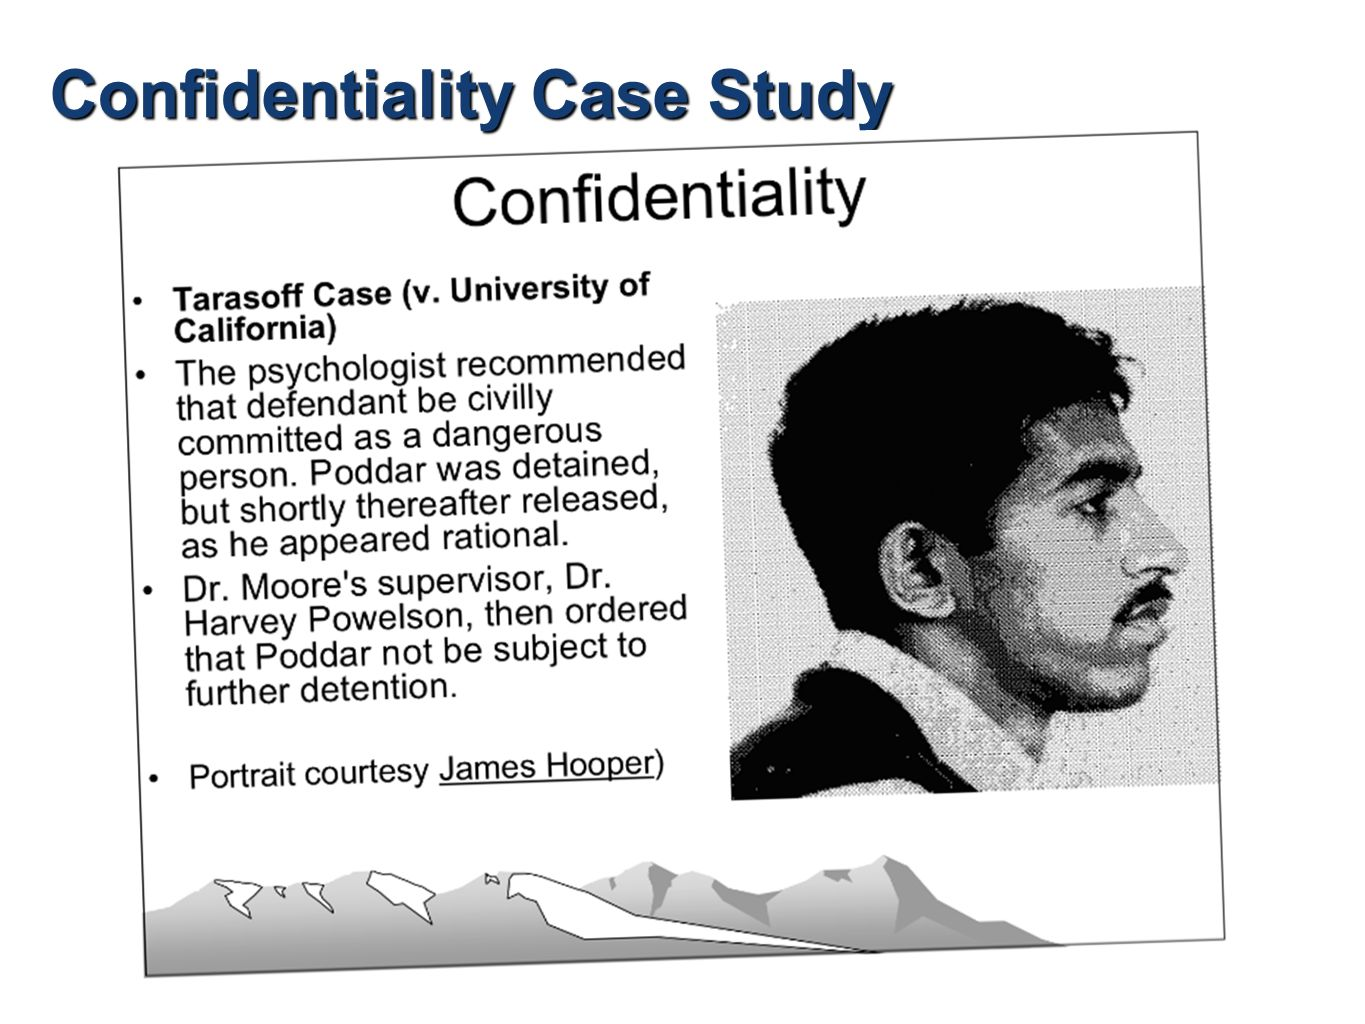 a case study to demonstrate confidentiality Click the link below to download the full case study non-disclosure to auditors the culture and the bribe allegedly paid to the overseas company and still demonstrate confidentiality - is there any basis in which you could or should make disclosures professional behaviour - how.